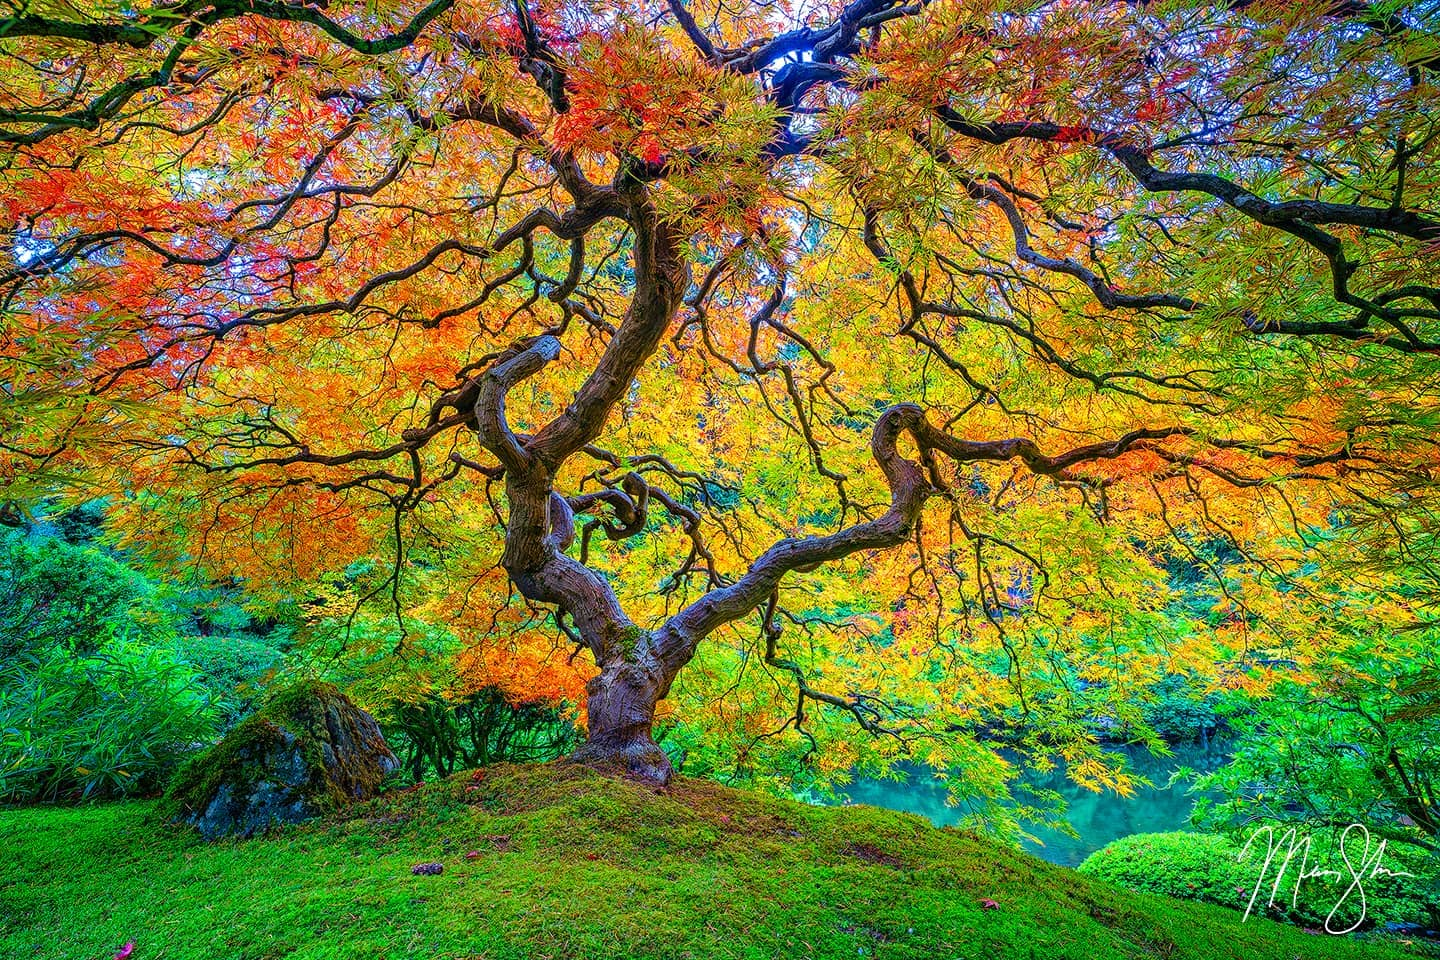 Luxurious Fine Art Print of Portland Japanese Garden's famous Japanese Maple Tree as it transitions from the green of summer to peak fall colors of yellow, orange and red